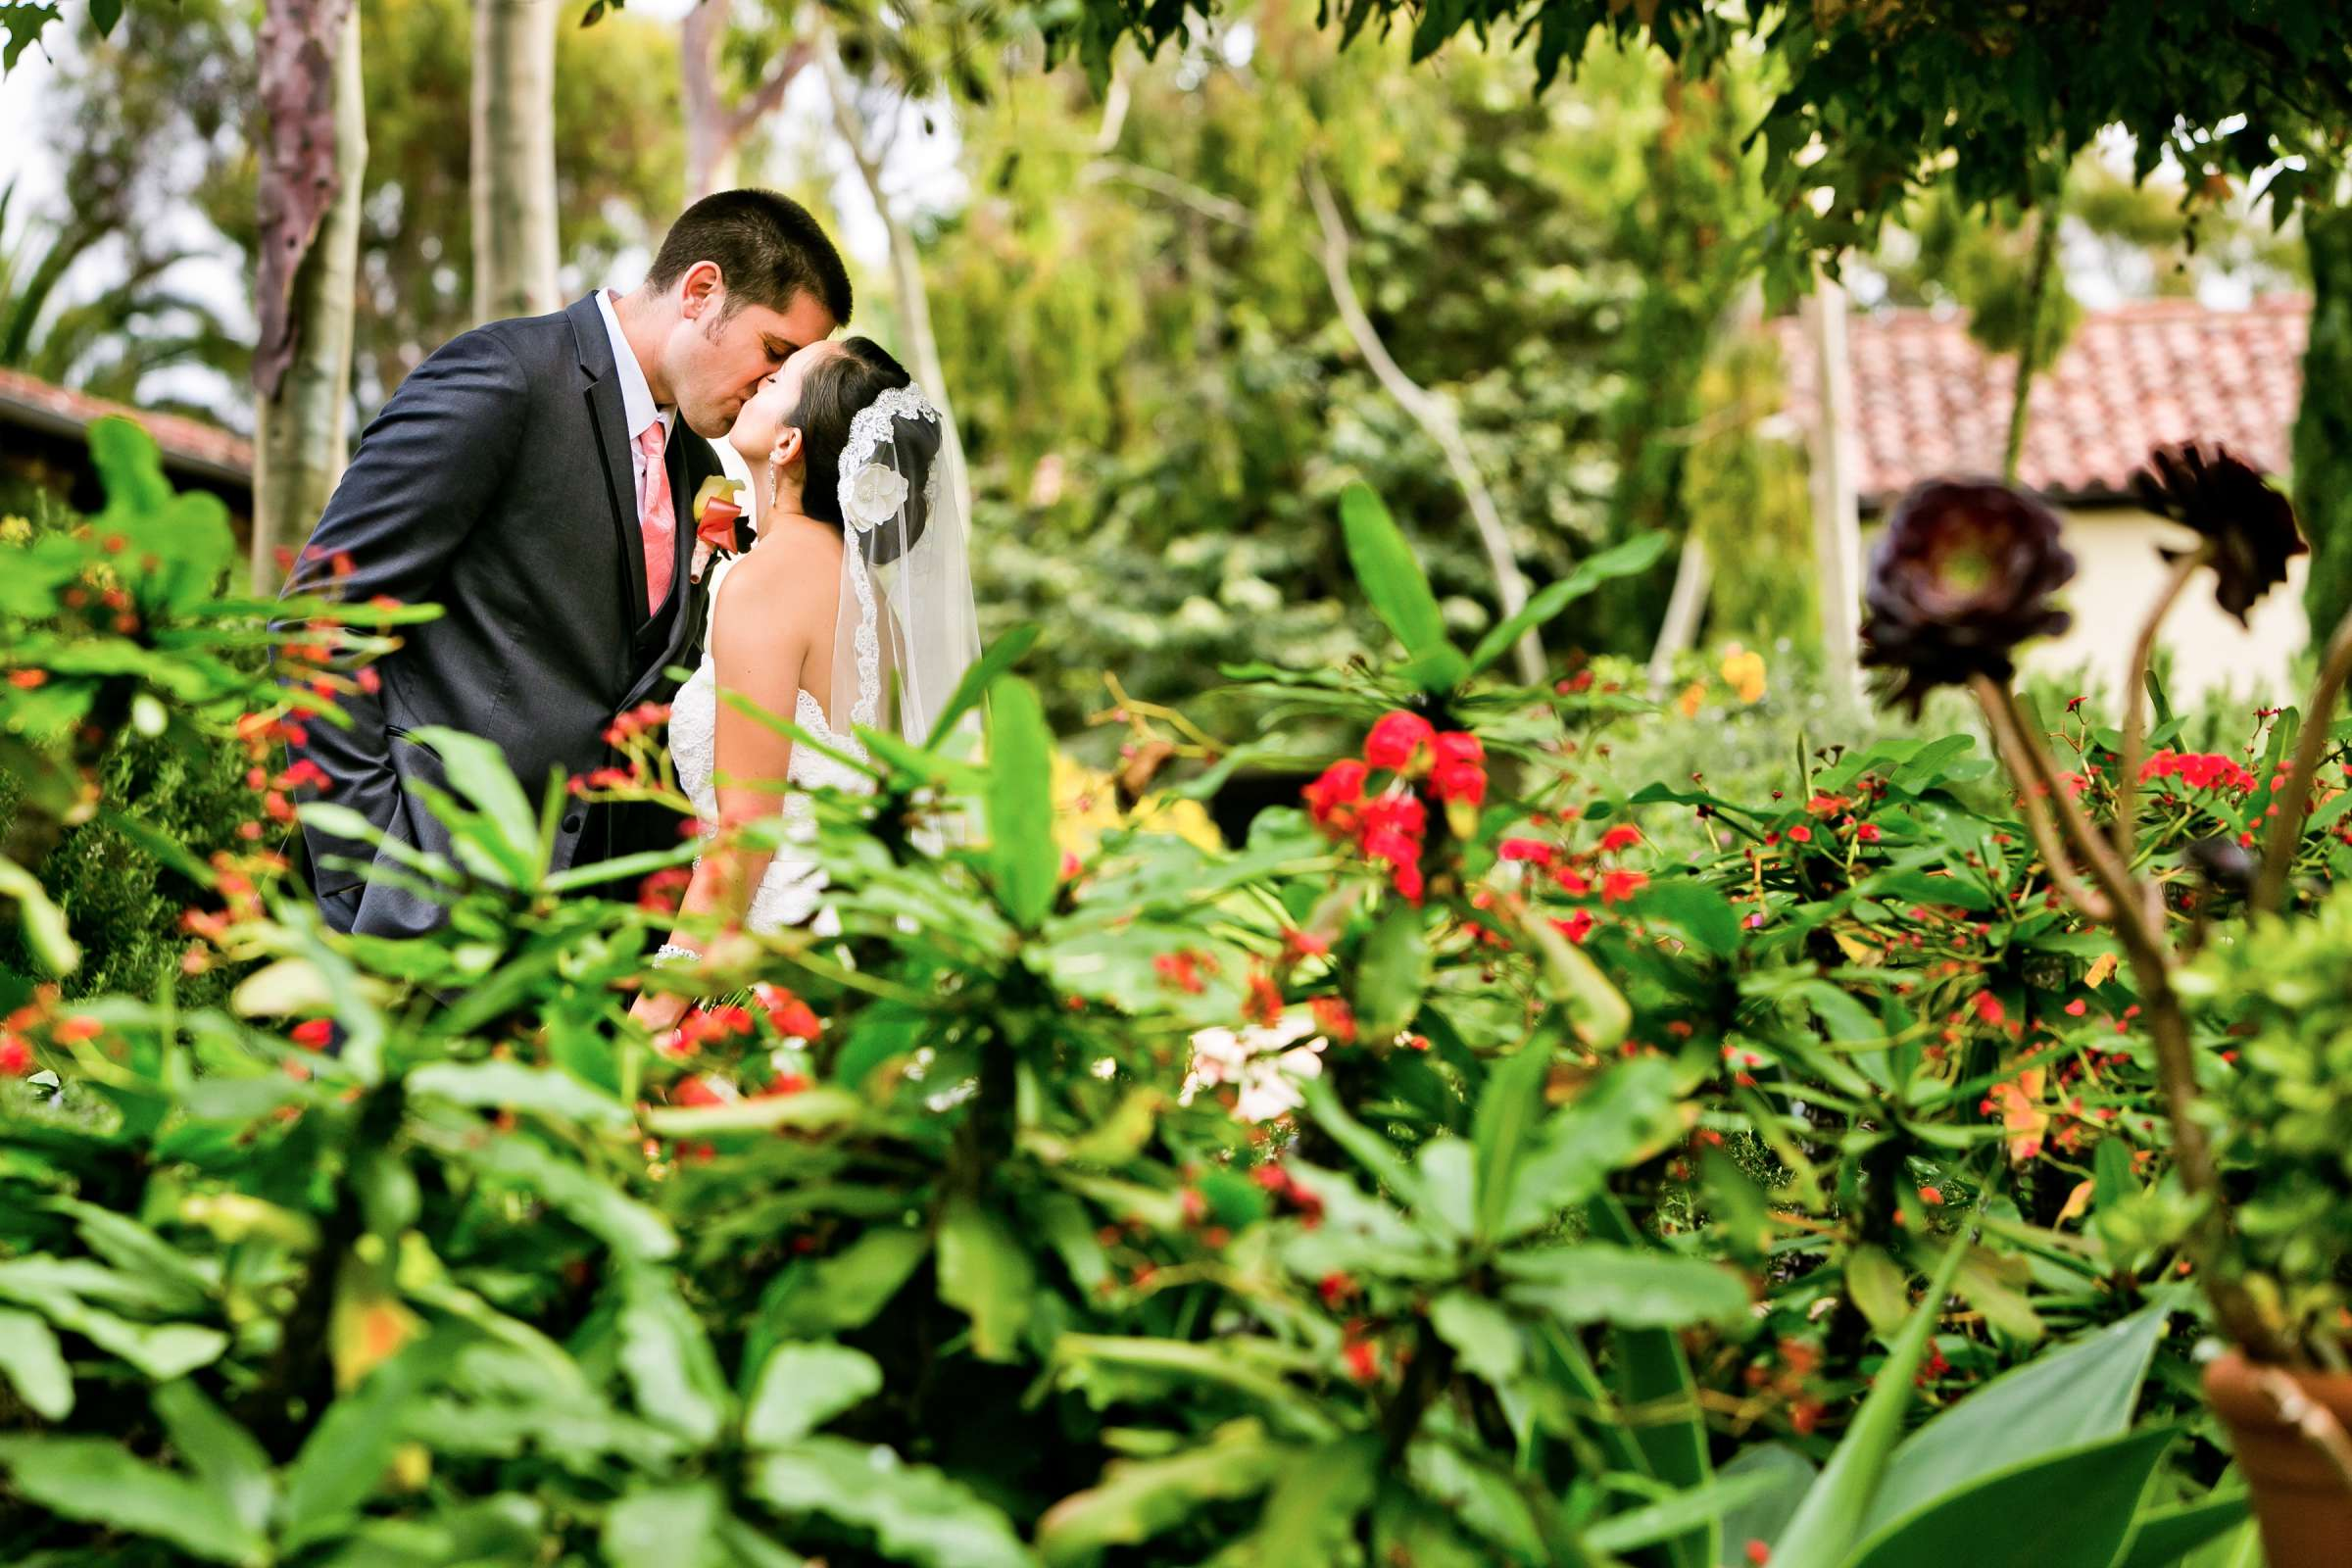 Estancia Wedding coordinated by Evelyn Francesca Events & Design, Megan and Patrick Wedding Photo #1 by True Photography